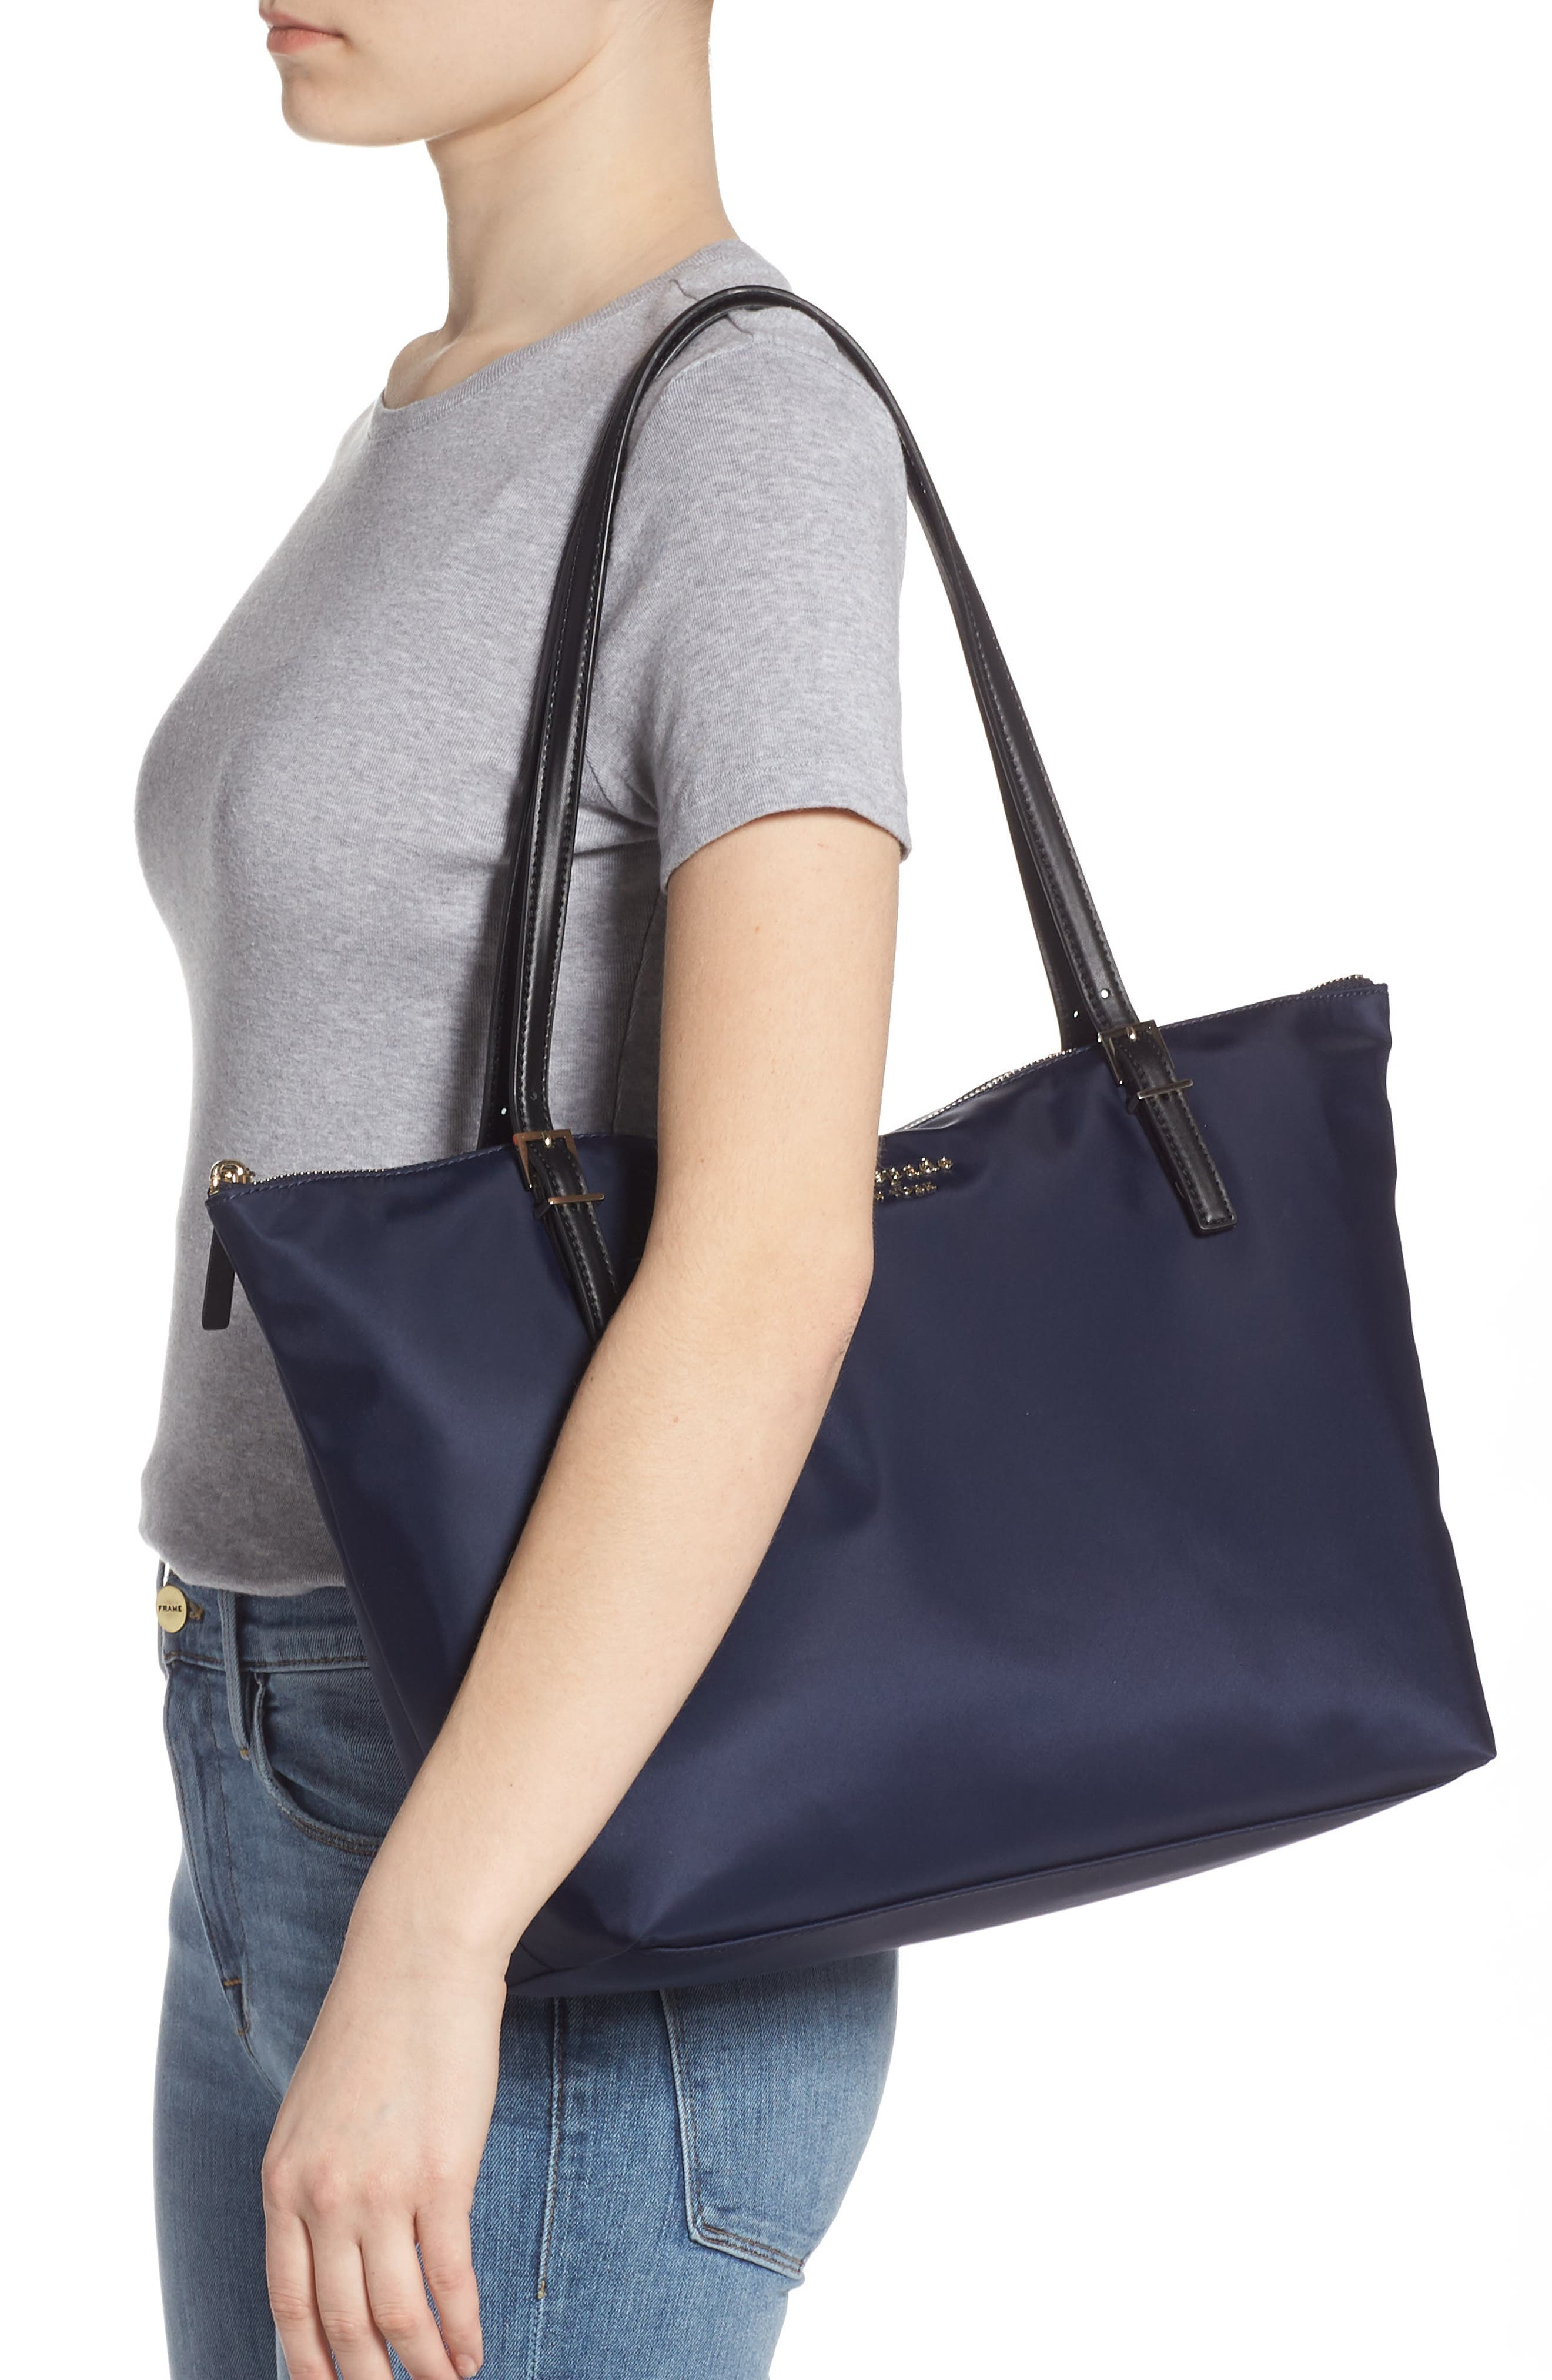 KATE SPADE NEW YORK,                             watson lane maya nylon tote,                             Alternate thumbnail 2, color,                             RICH NAVY